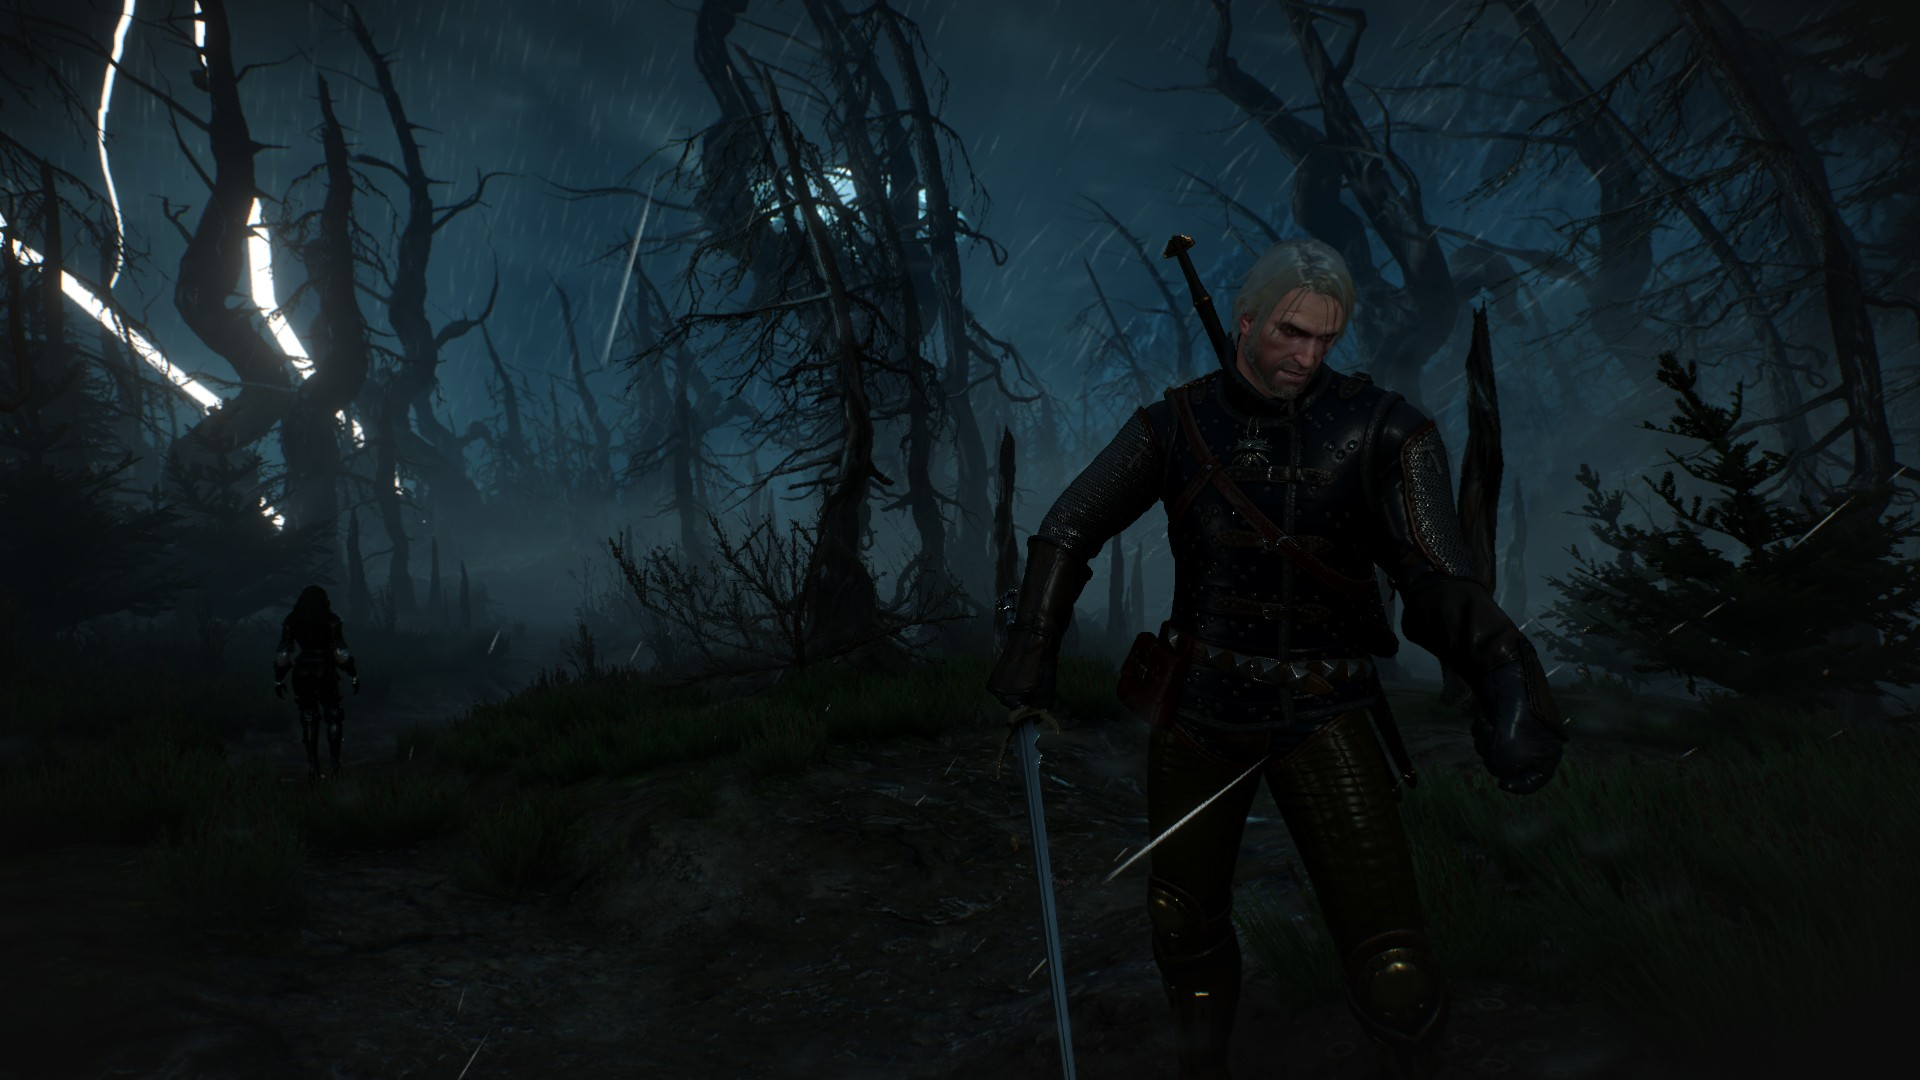 The Witcher 3 Screenshot 2019.02.05 - 13.10.32.51.jpg - Witcher 3: Wild Hunt, the